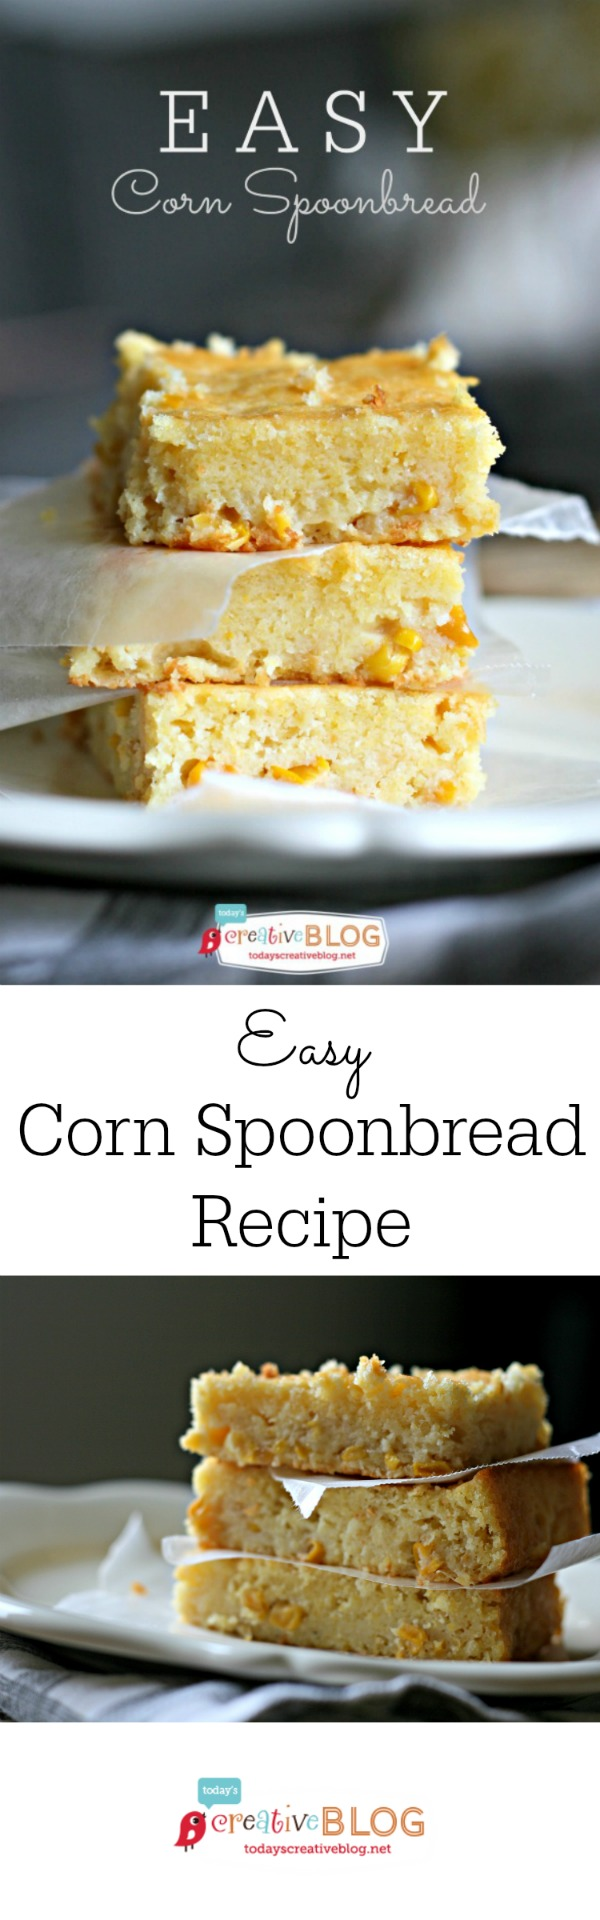 Easy Spoonbread Recipe on Today's Creative Blog